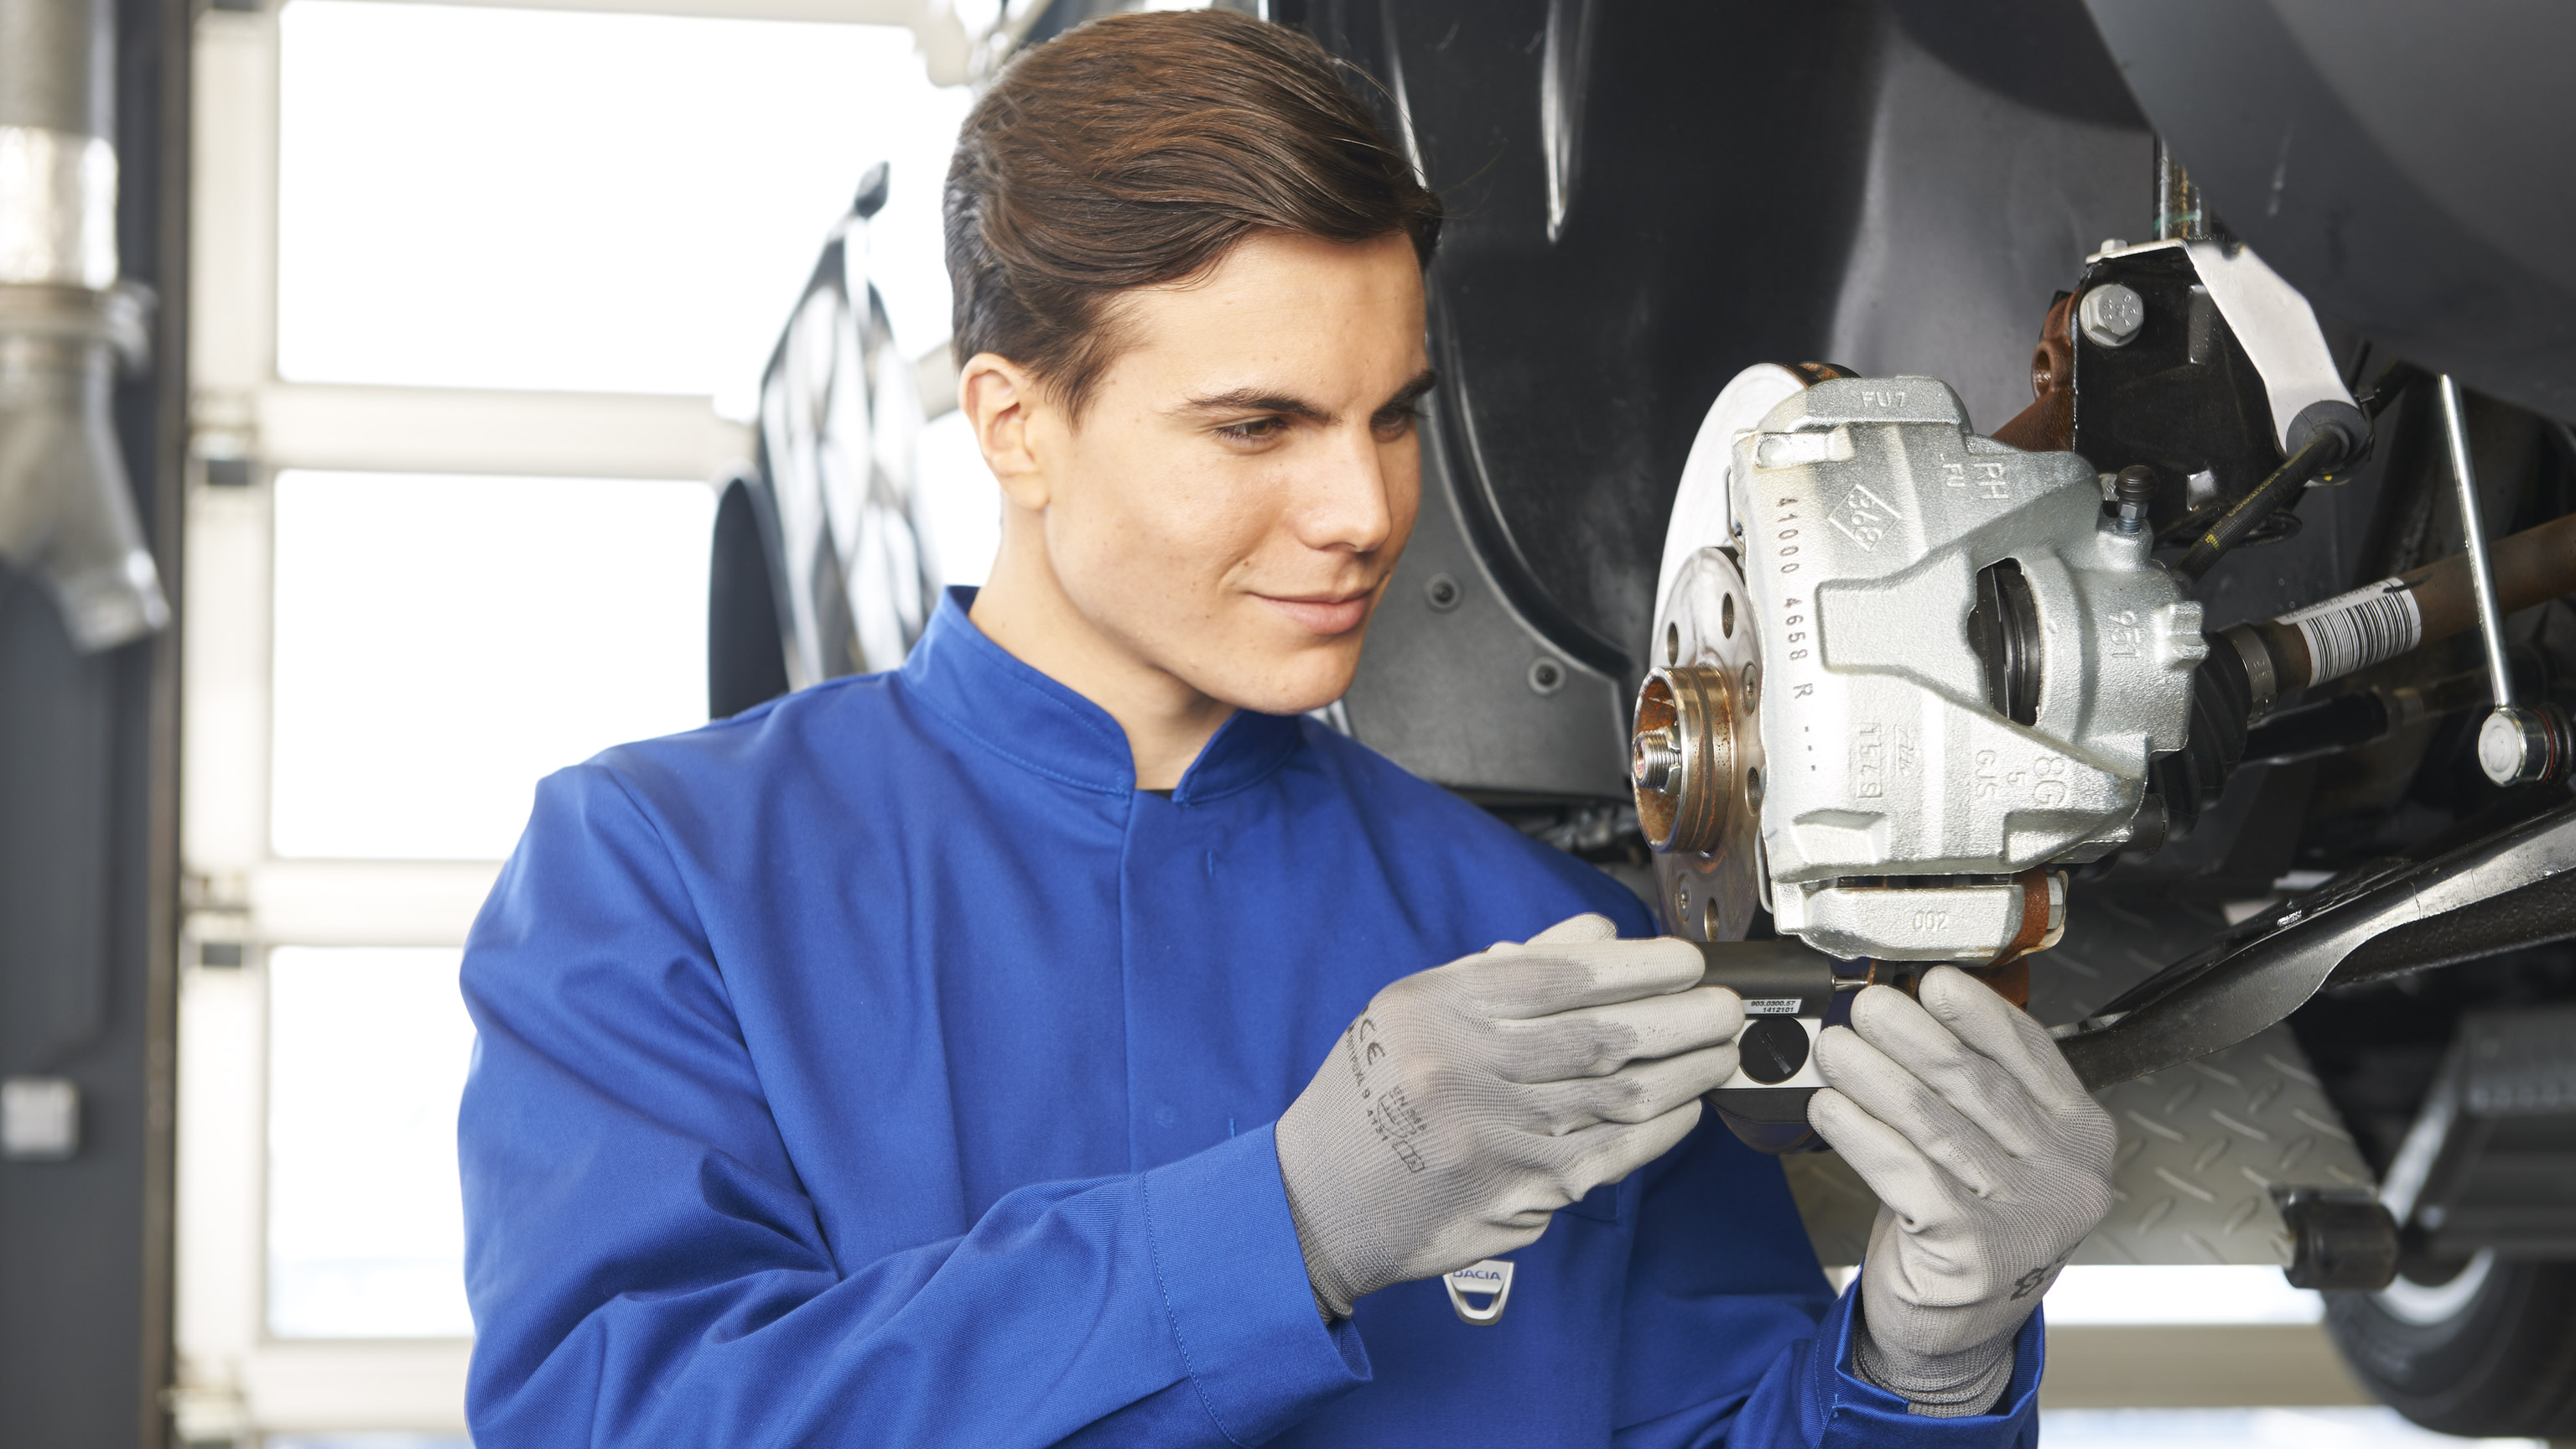 Dacia-services-and-maintenance-ateliers-dacia-controle-technique-017.jpg